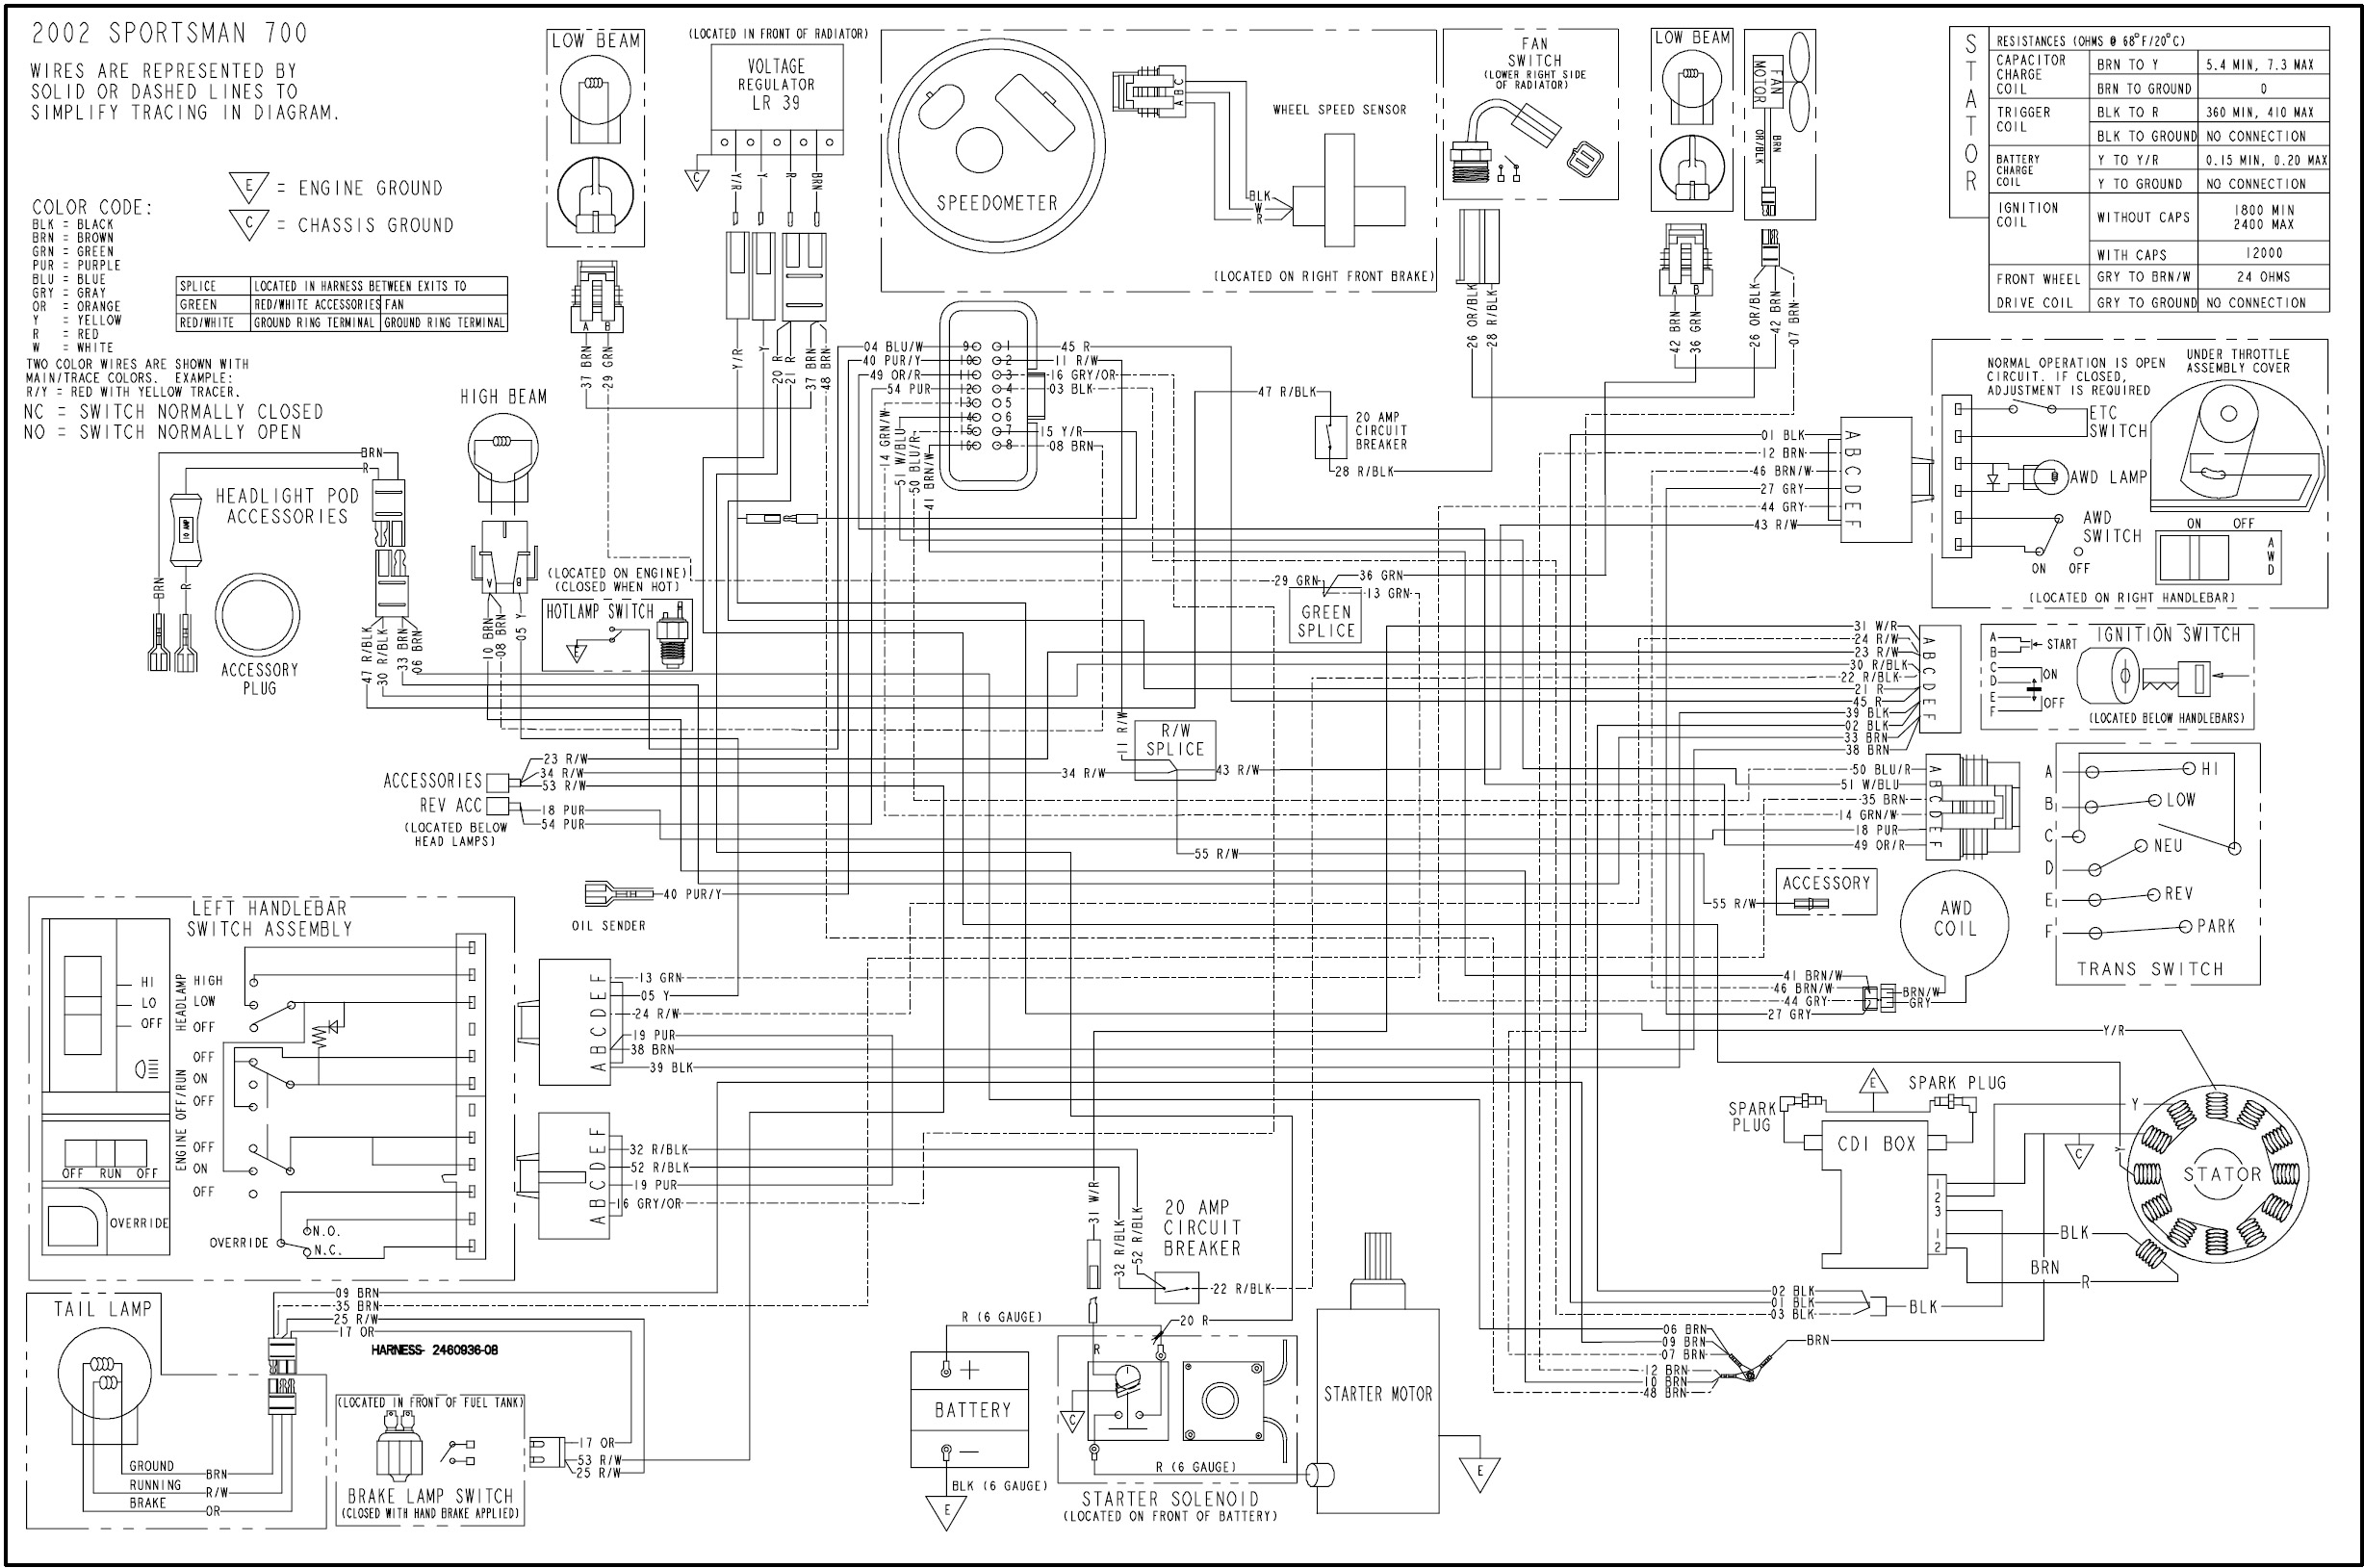 wd_700_02 wiring diagram 2003 polaris 600 atv readingrat net polaris 500 wiring diagram at metegol.co